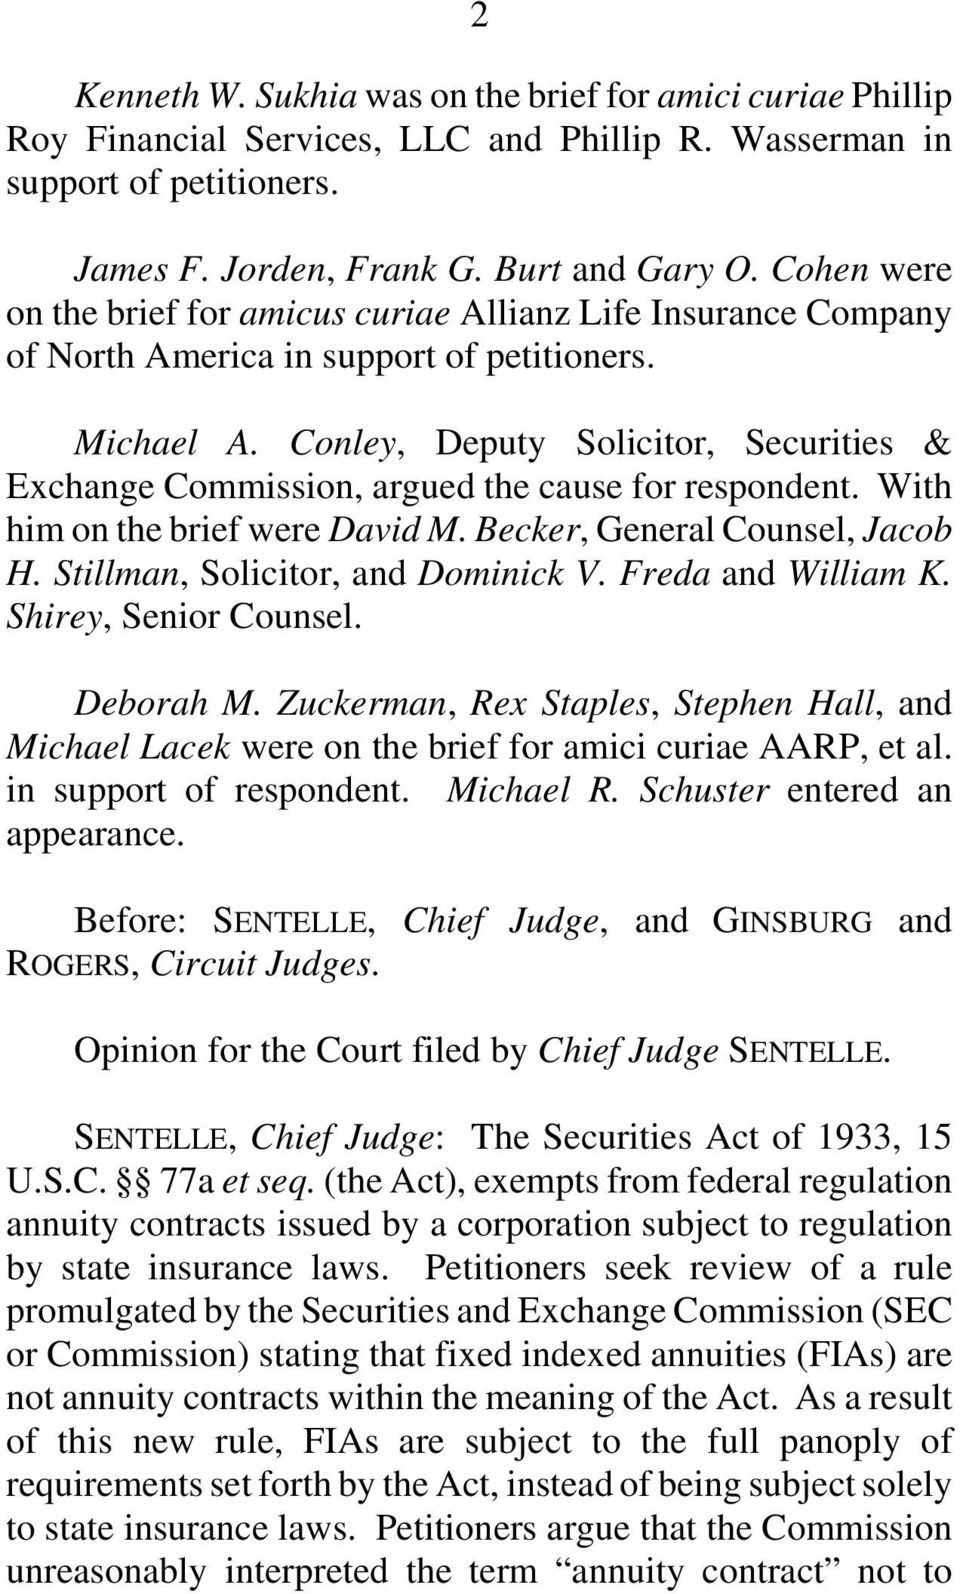 Conley, Deputy Solicitor, Securities & Exchange Commission, argued the cause for respondent. With him on the brief were David M. Becker, General Counsel, Jacob H. Stillman, Solicitor, and Dominick V.